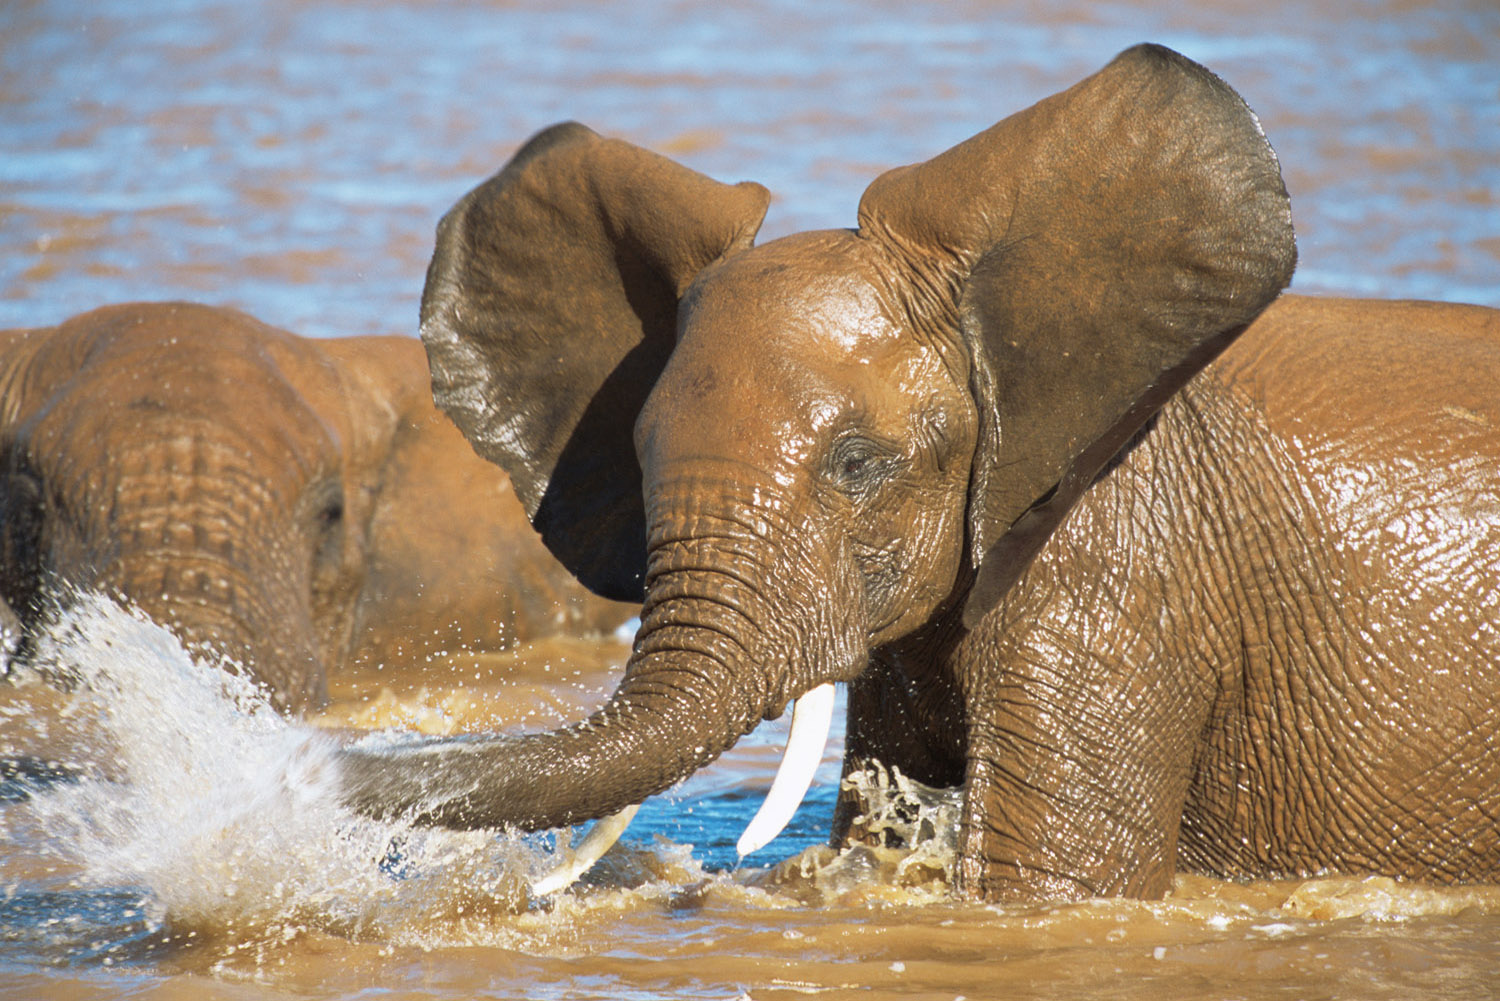 African elephant bathing in Uaso Nyiro River, Samburu National Reserve, Kenya